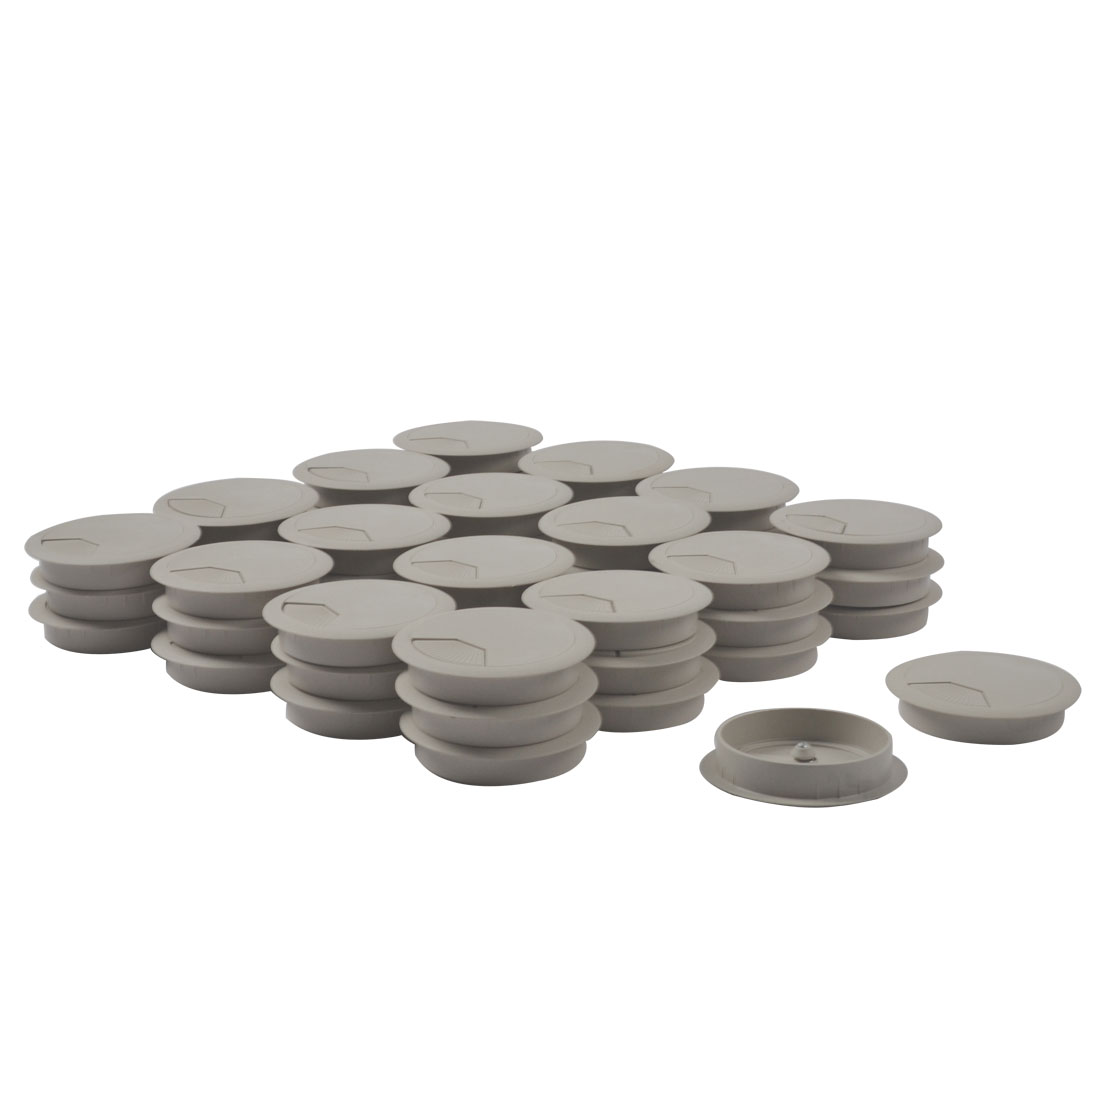 Computer Table Plastic Round Grommet Wire Cord Cable Hole Cover Gray 79mm Dia 50pcs